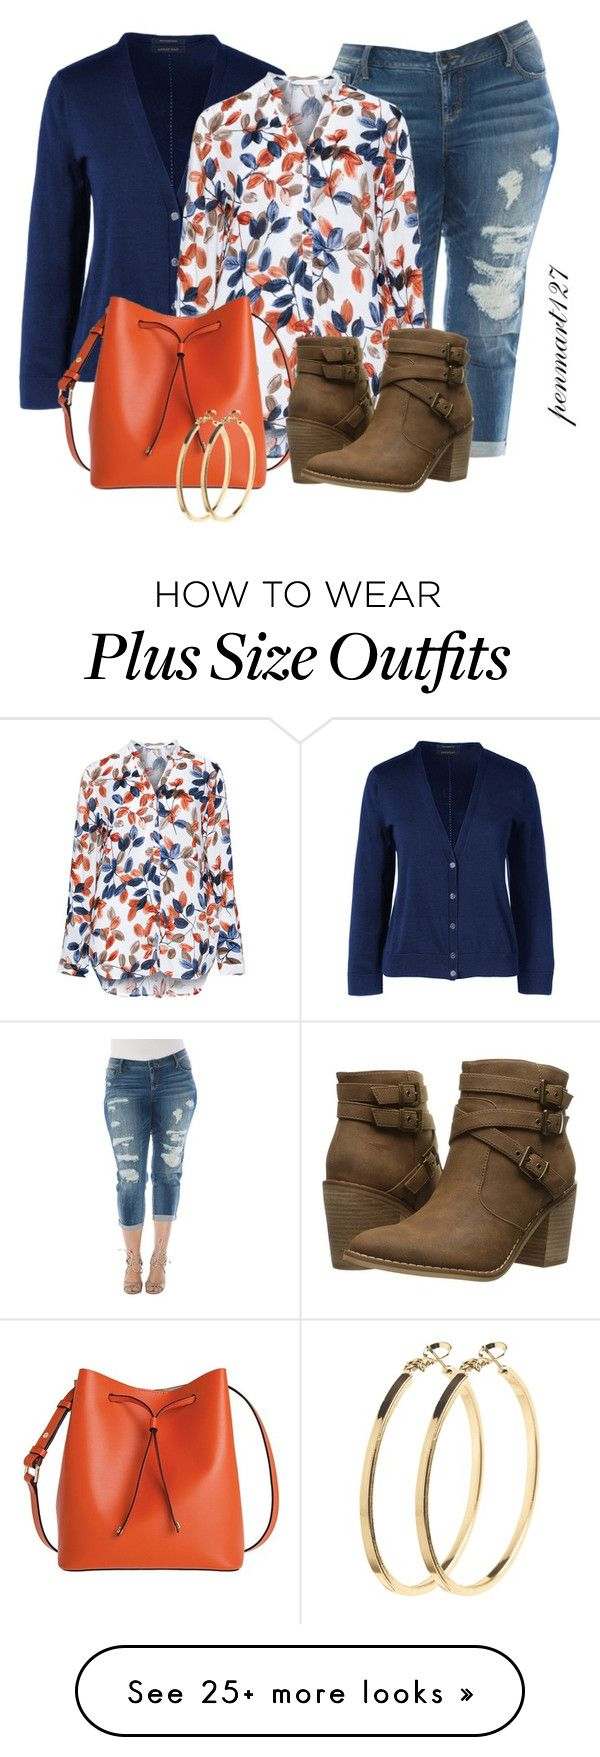 """""""Fall #Plussize"""" by penny-martin on Polyvore featuring Slink Jeans, Lands' End, Eterna, Lodis, Rocket Dog, Pieces and plus size clothing"""